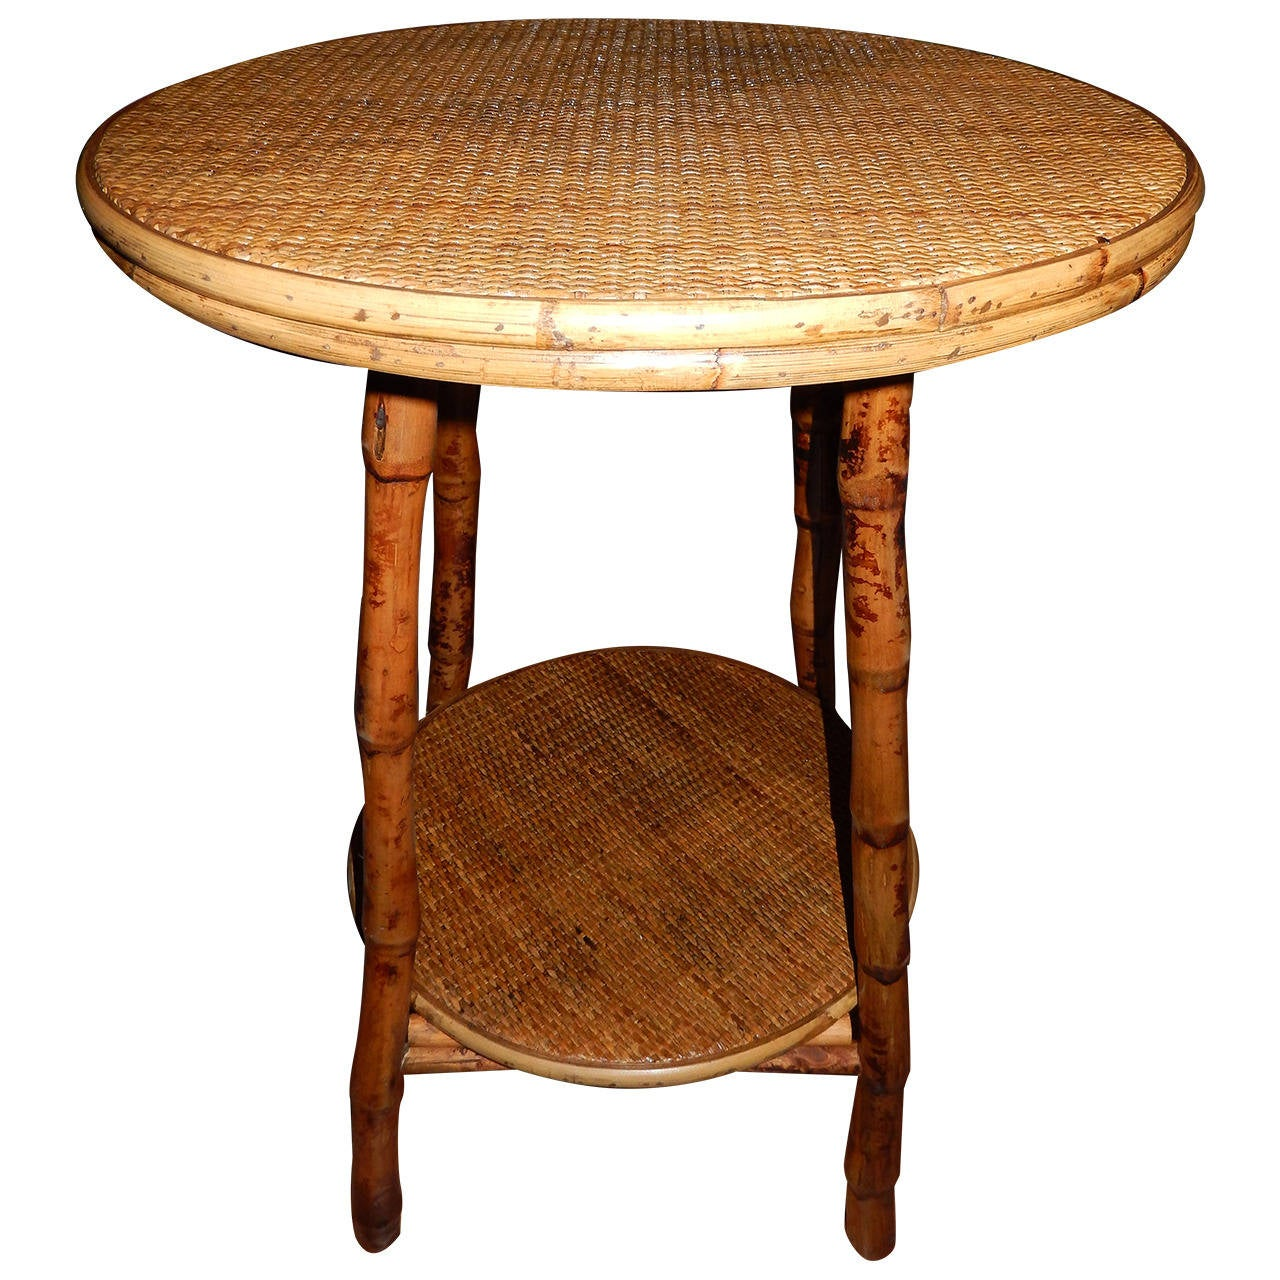 Pair of bamboo and cane side tables at 1stdibs for Bamboo side table